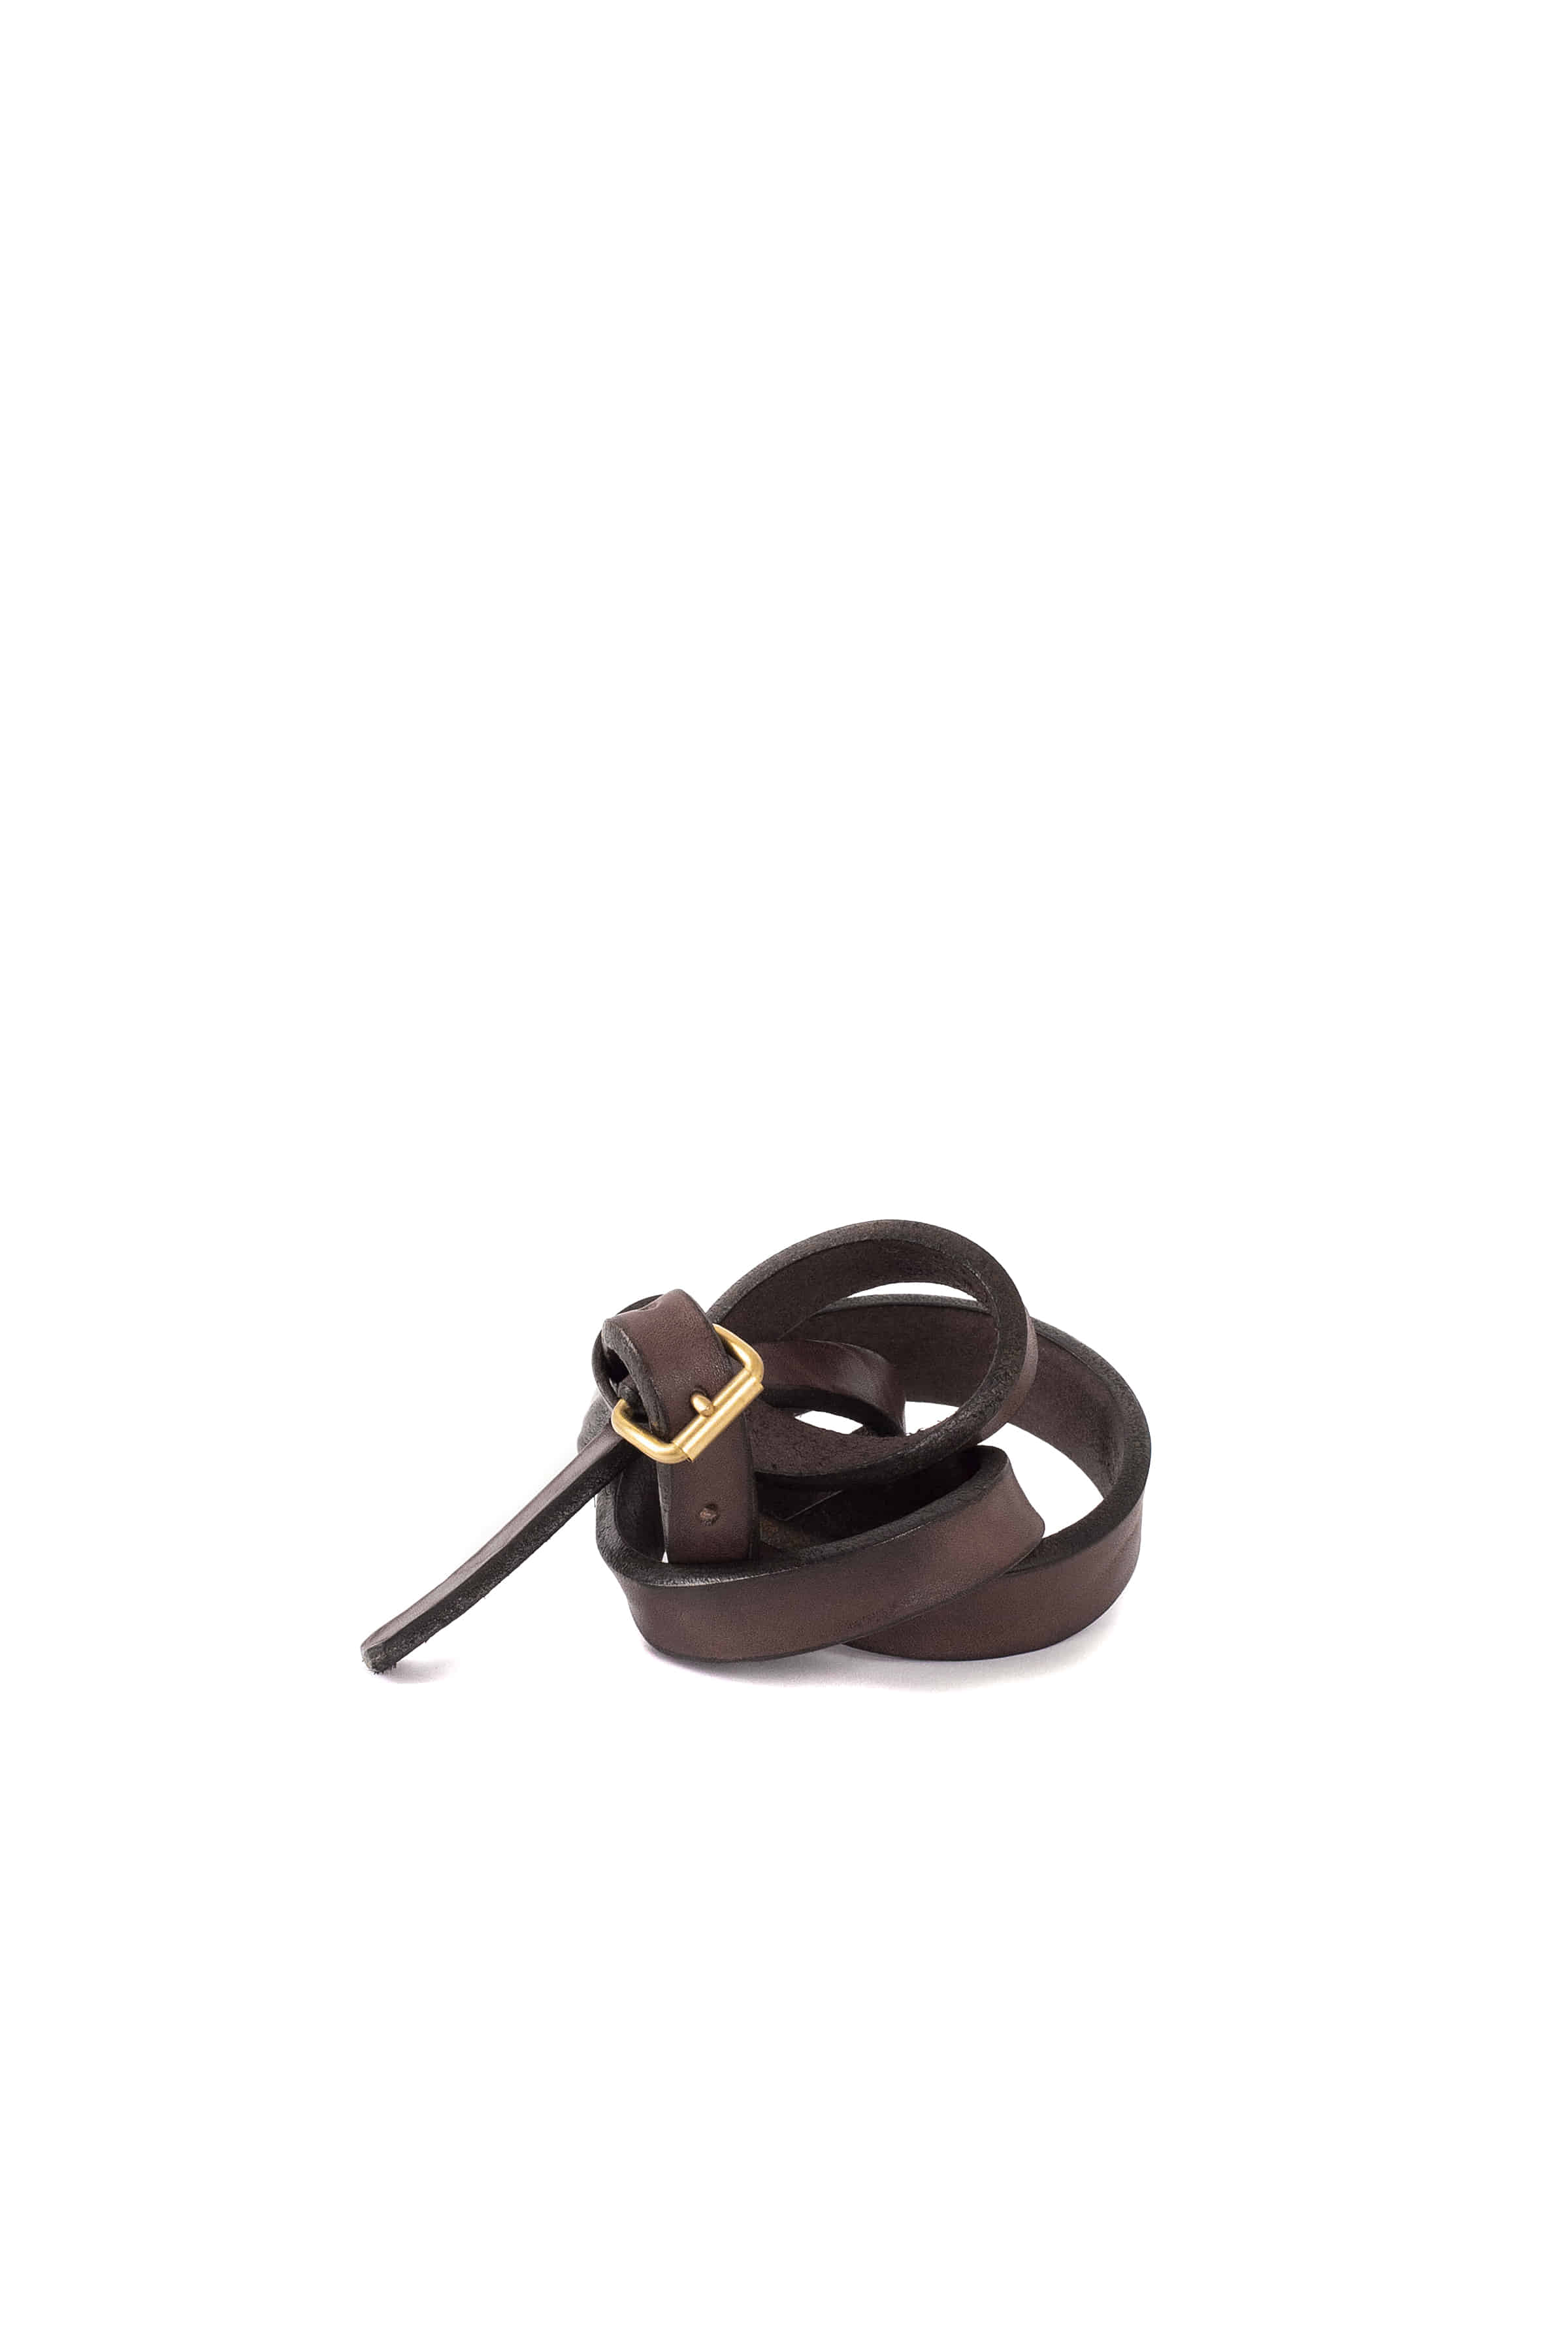 Scye : Cow Shoulder Plain Belt (Brown)